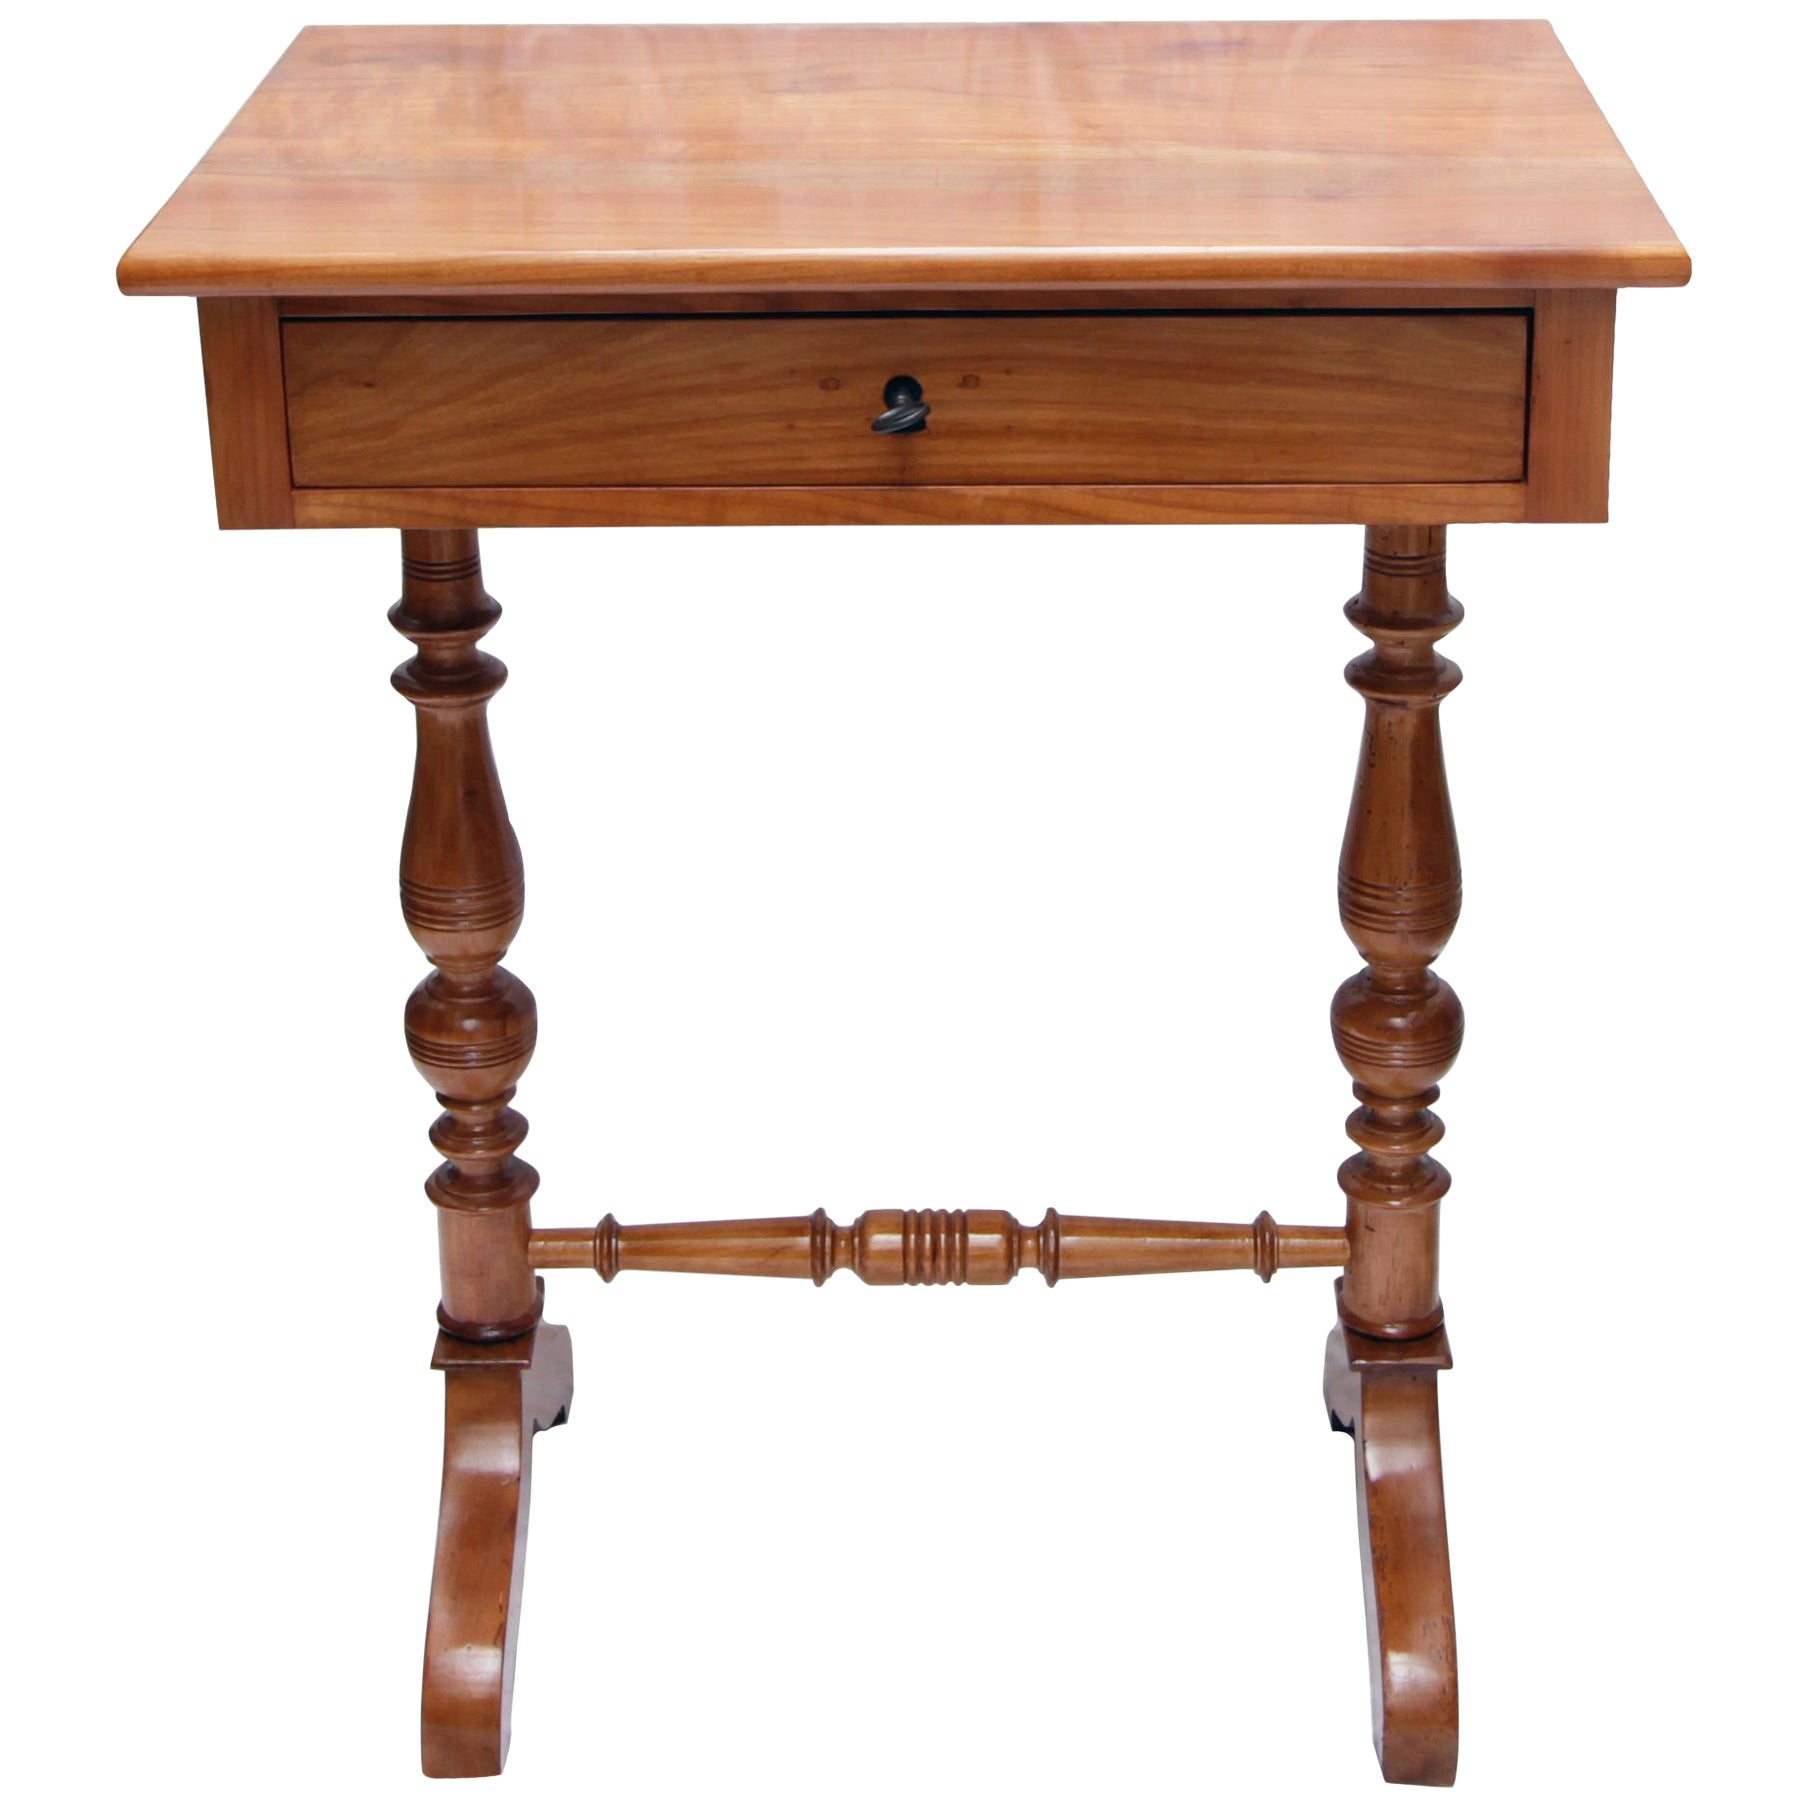 Late Biedermeier / Historicism Sewing / Side Table Made of Solid Cherrywood